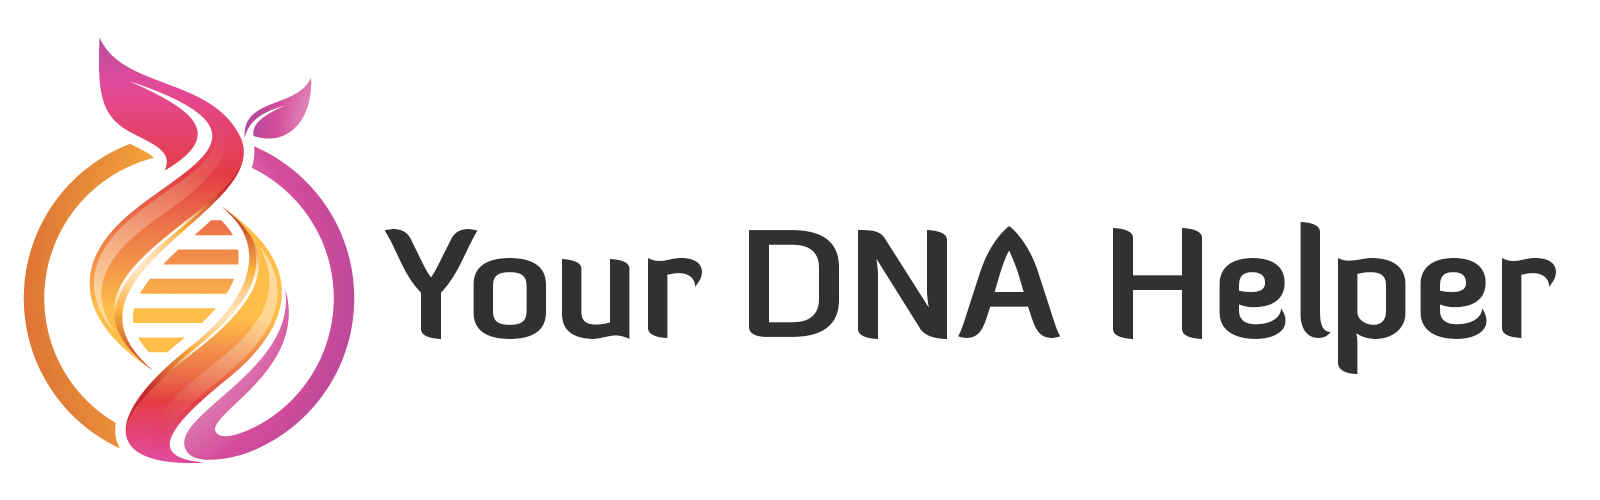 Your DNA Helper Logo